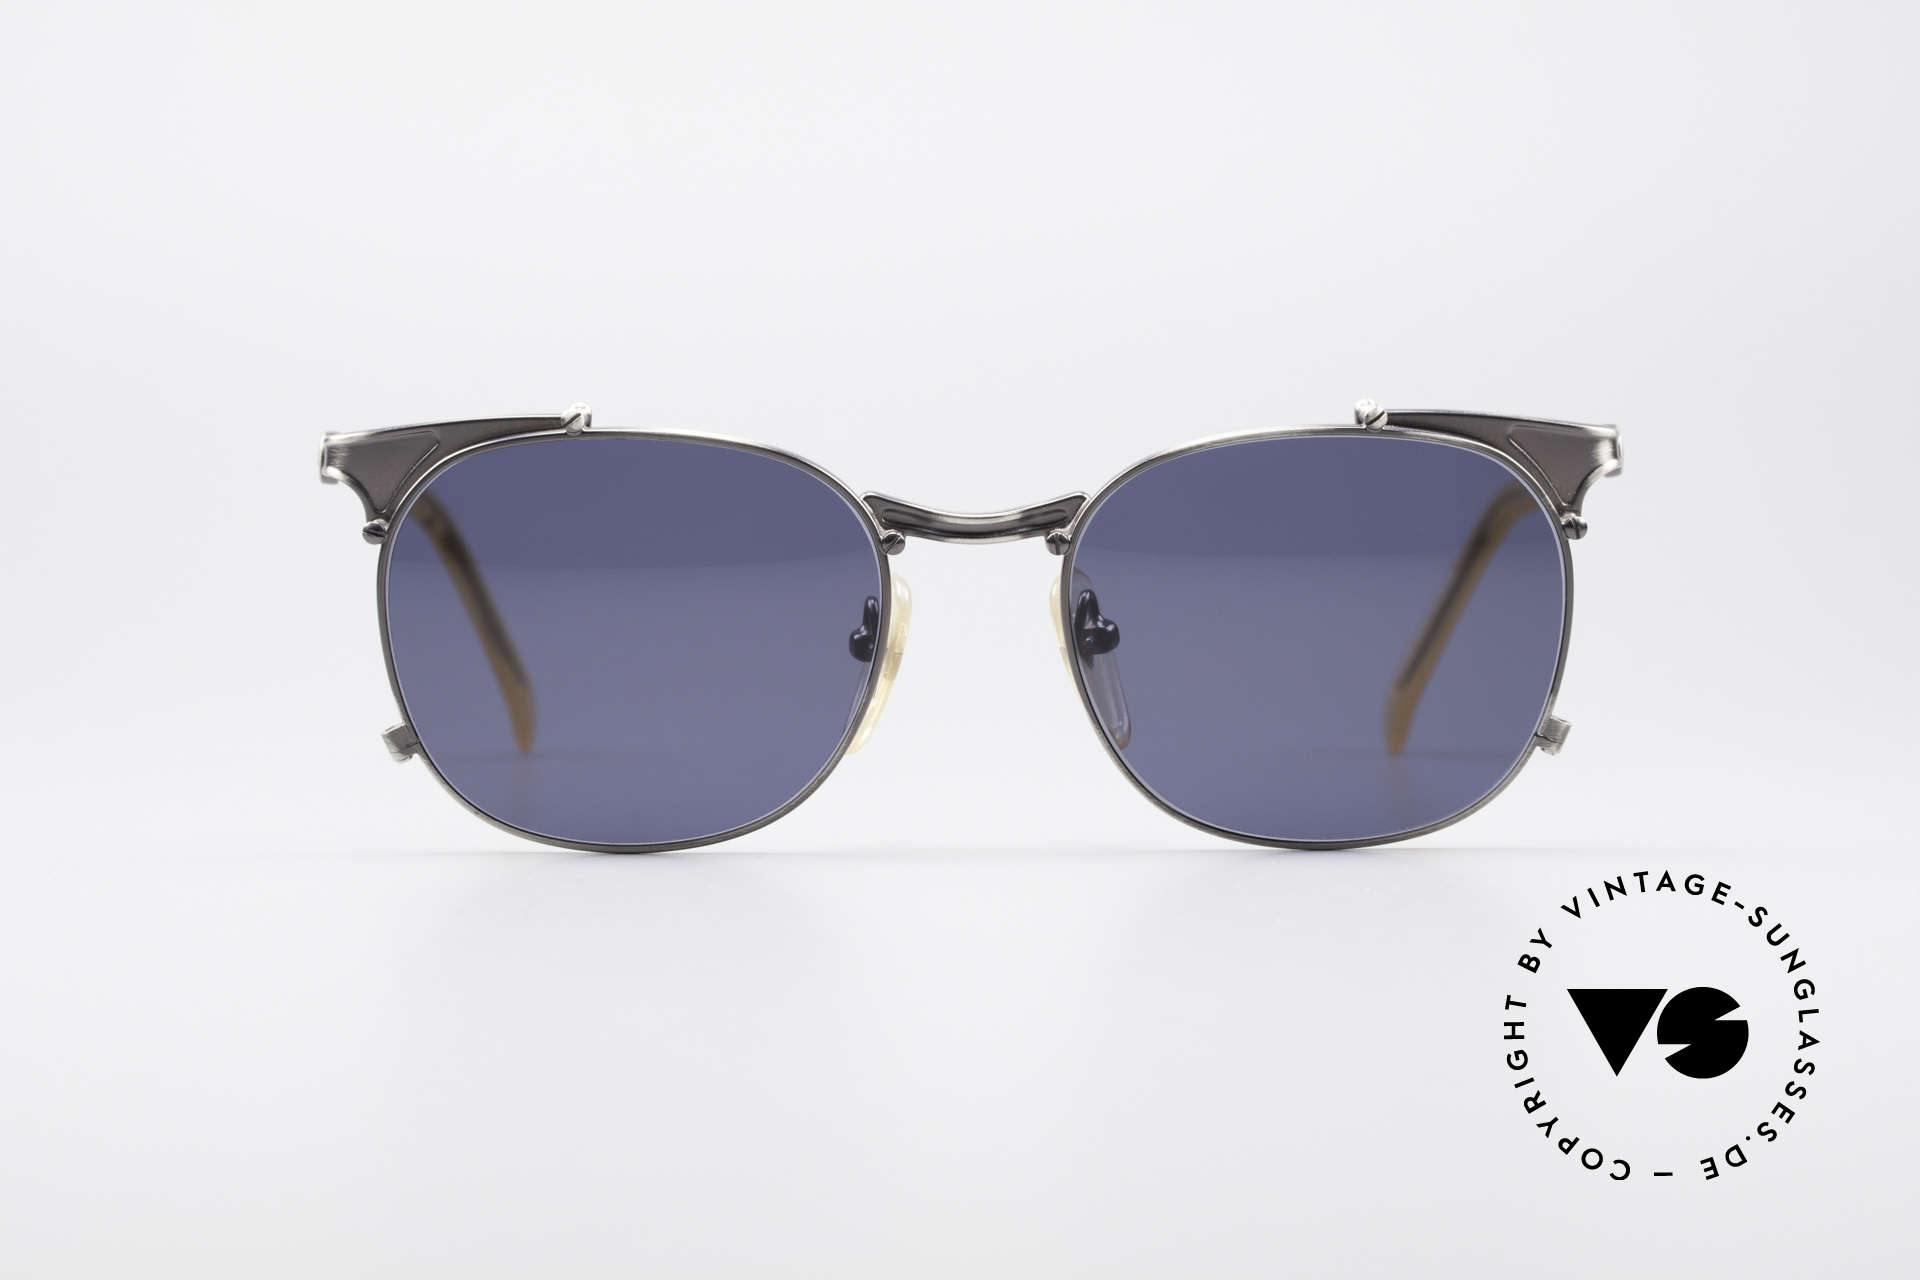 Jean Paul Gaultier 56-2175 90's Designer Sunglasses, timeless 90's designer frame; sober & elegant, Made for Men and Women